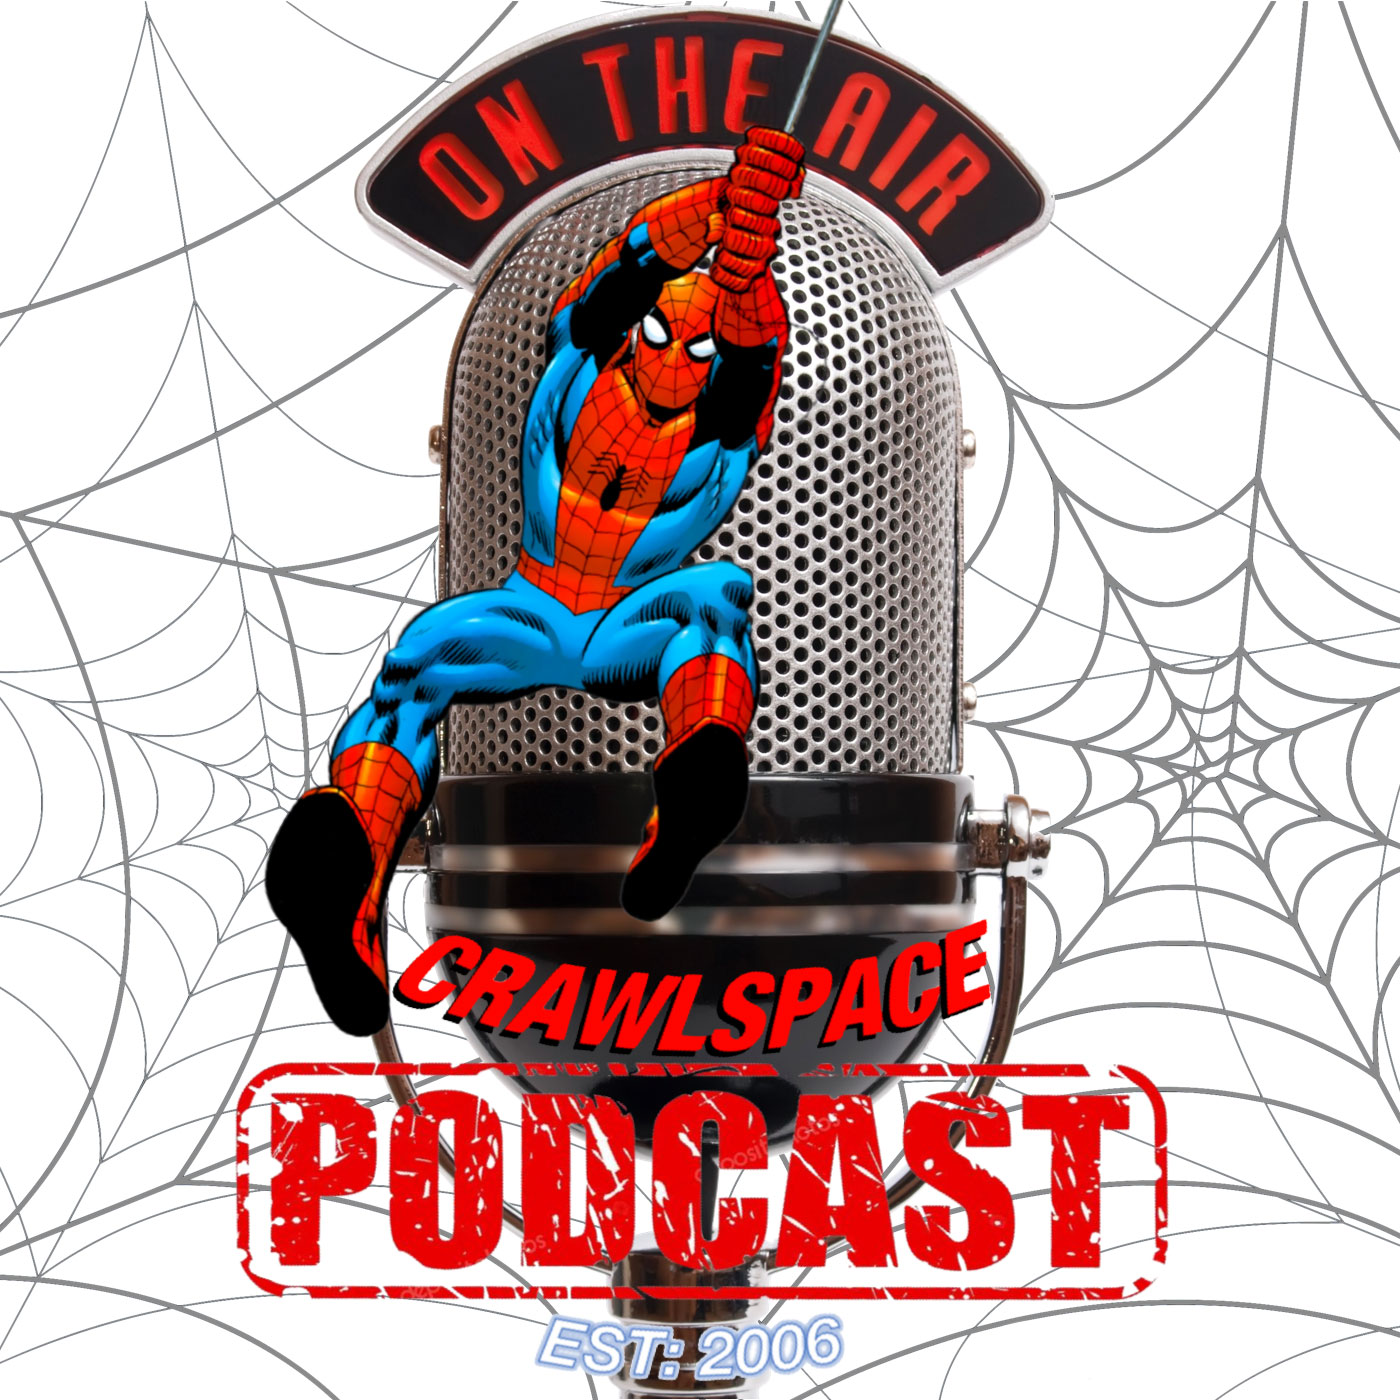 Spider-Man Crawlspace Podcast on Apple Podcasts